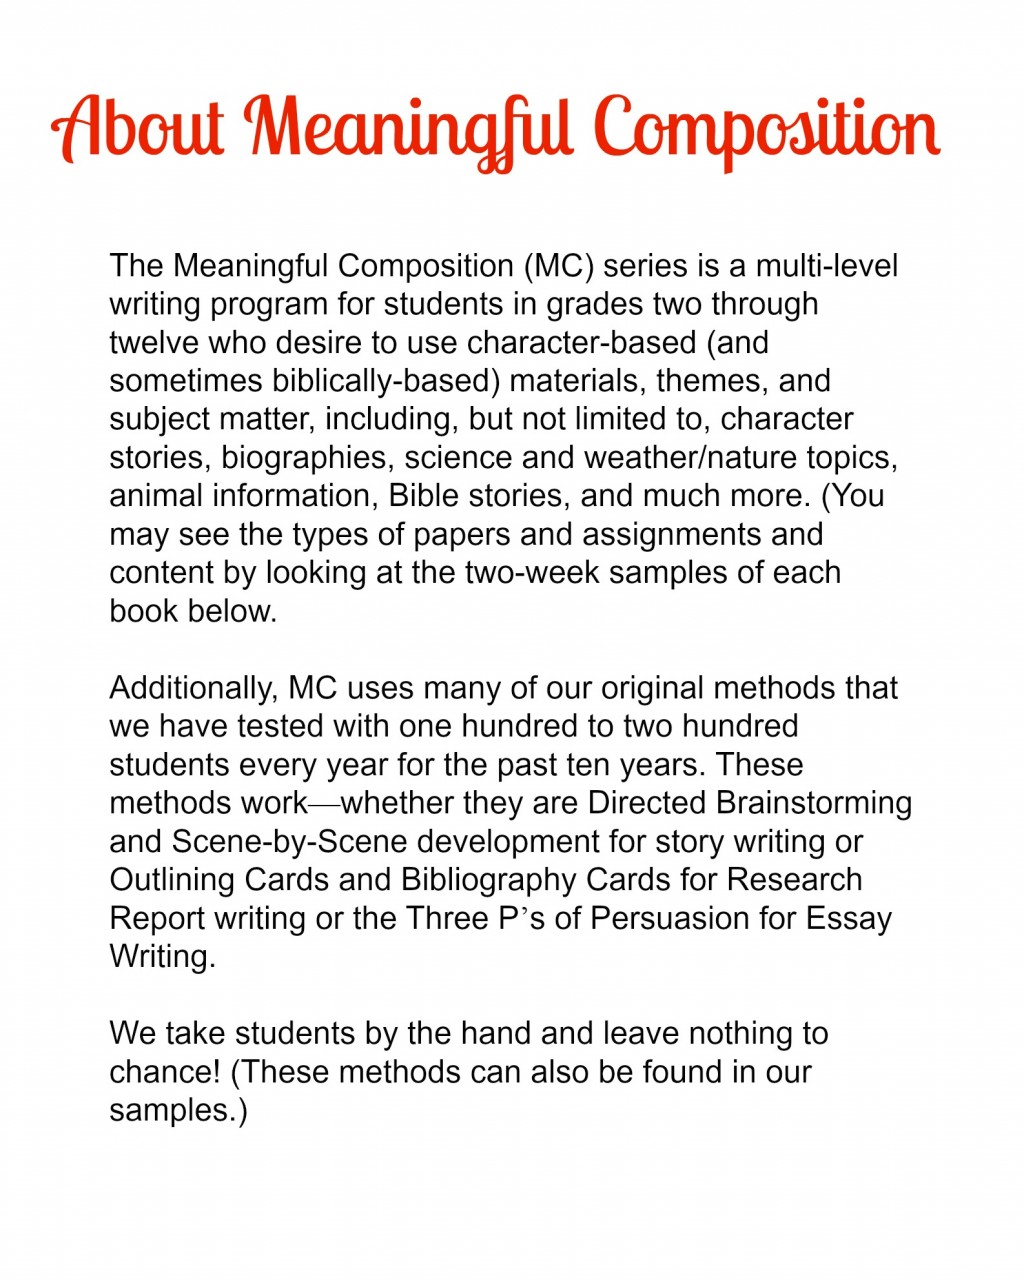 025 Expository Essays Of Introductions Creative Writing Course Paragraph Persuasive On Bullying About Meaningful Compos Cyber How To Prevent Five Stupendous Examples For 5th Grade Essay 11 High School Pdf Large